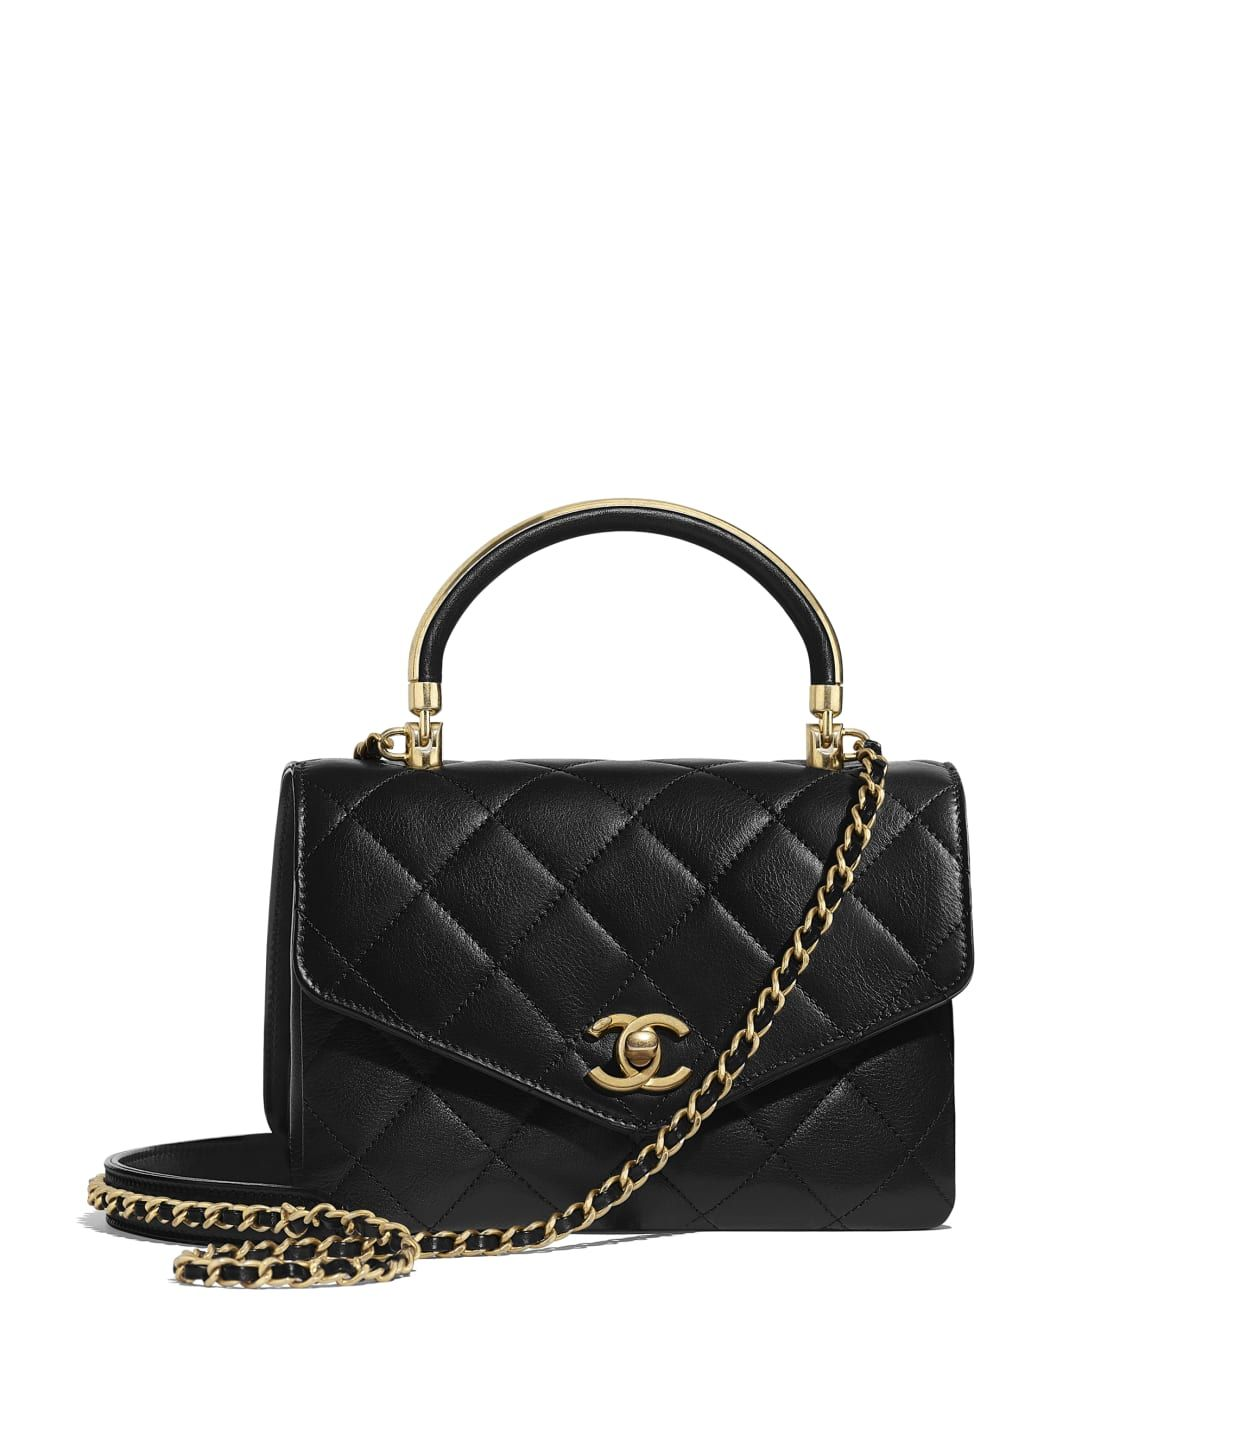 a8ed3f67c73c Discover the CHANEL Calfskin   Gold-Tone Metal Black Small Flap Bag with Top  Handle